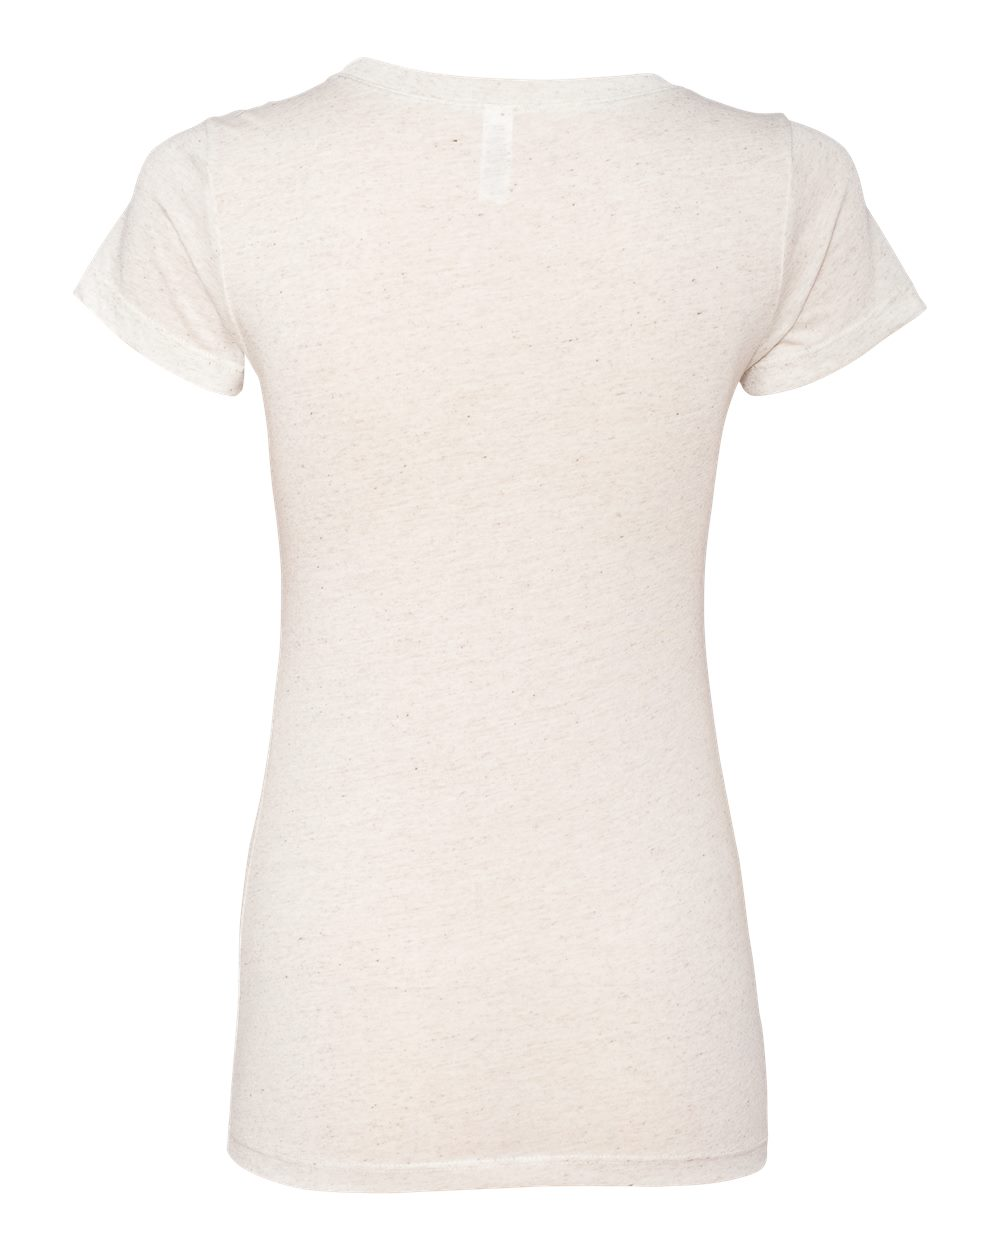 Bella-Canvas-Women-039-s-Triblend-Short-Sleeve-T-Shirt-B8413-S-2XL thumbnail 7